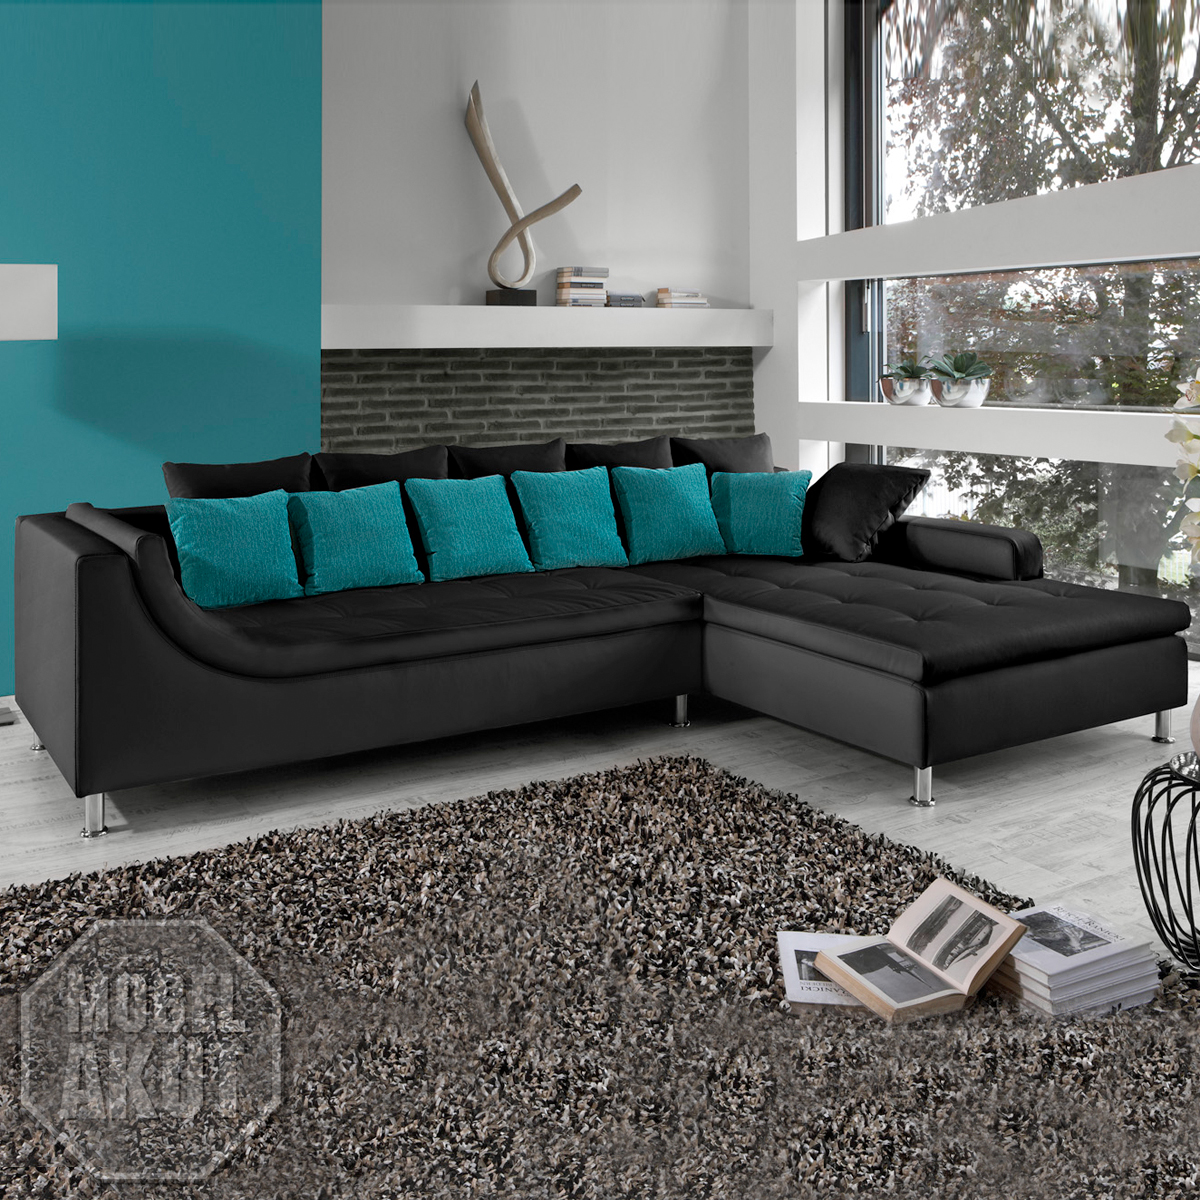 wohnlandschaft moreno sofa schwarz petrol t rkis neu ovp ebay. Black Bedroom Furniture Sets. Home Design Ideas